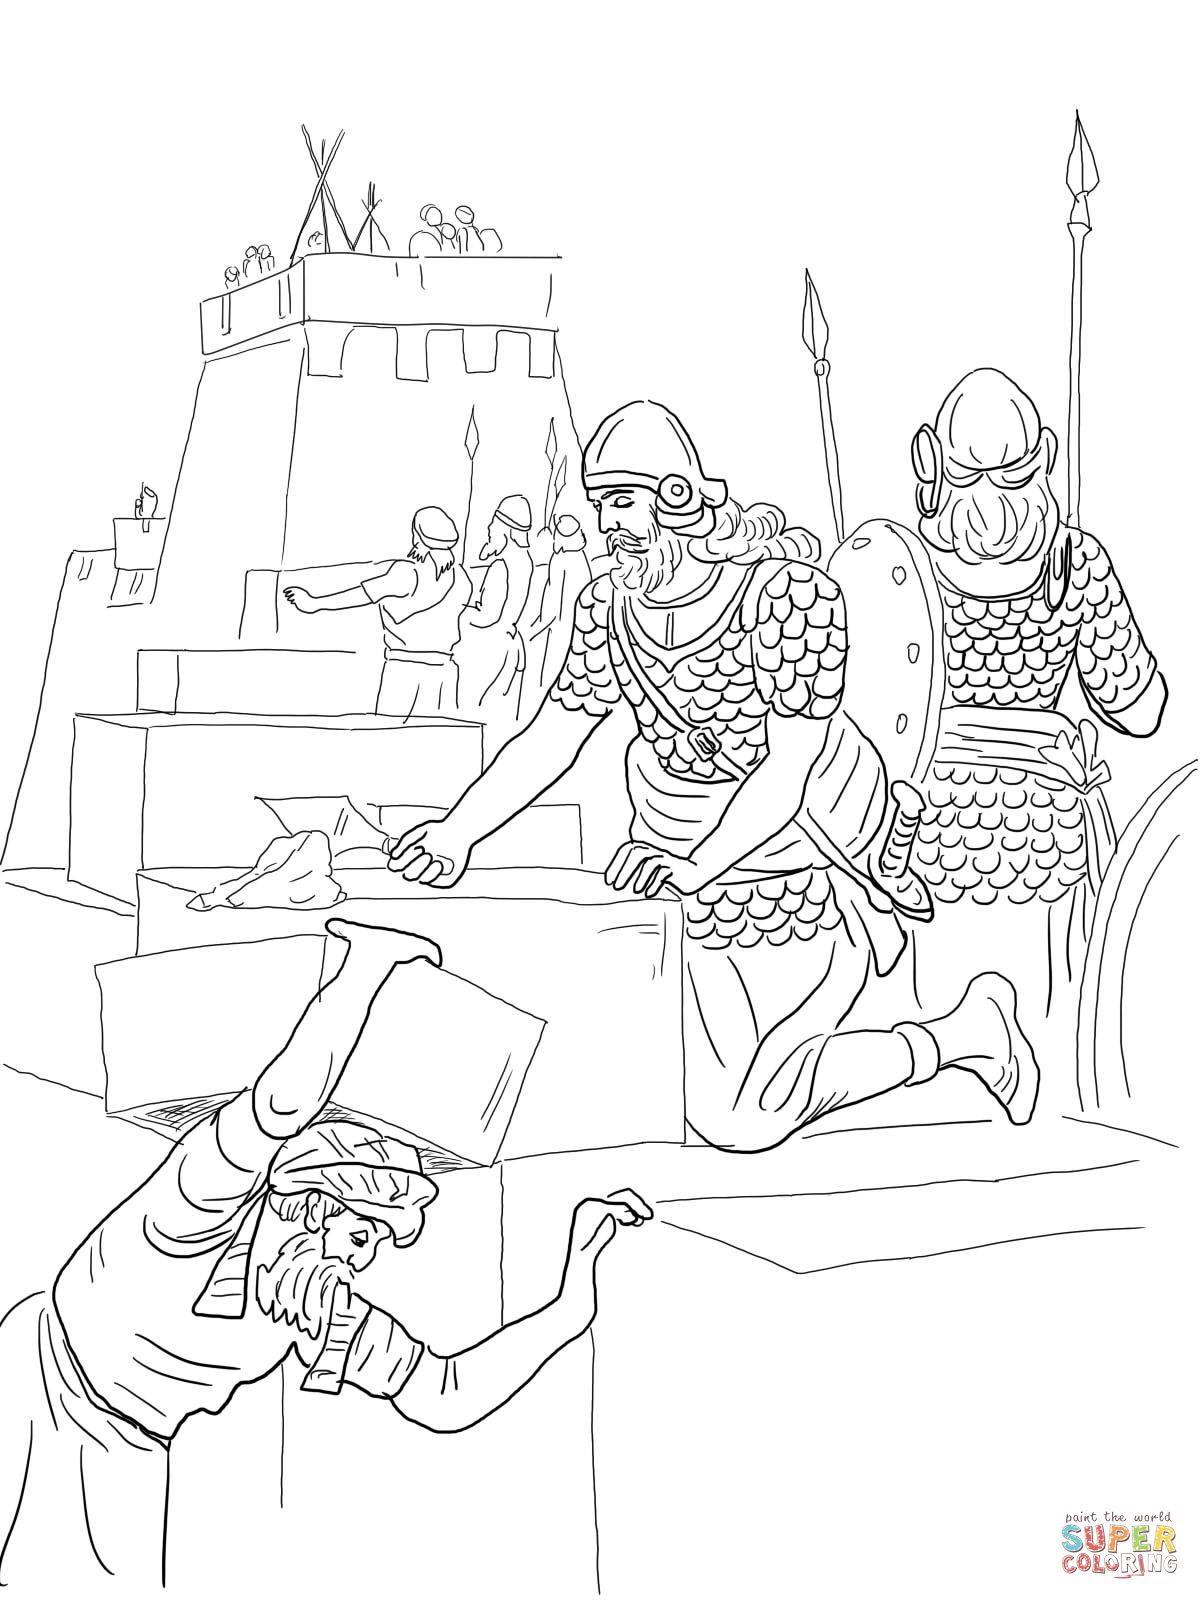 nehemiah coloring page nehemiah bible coloring pages toddler sunday school nehemiah coloring page